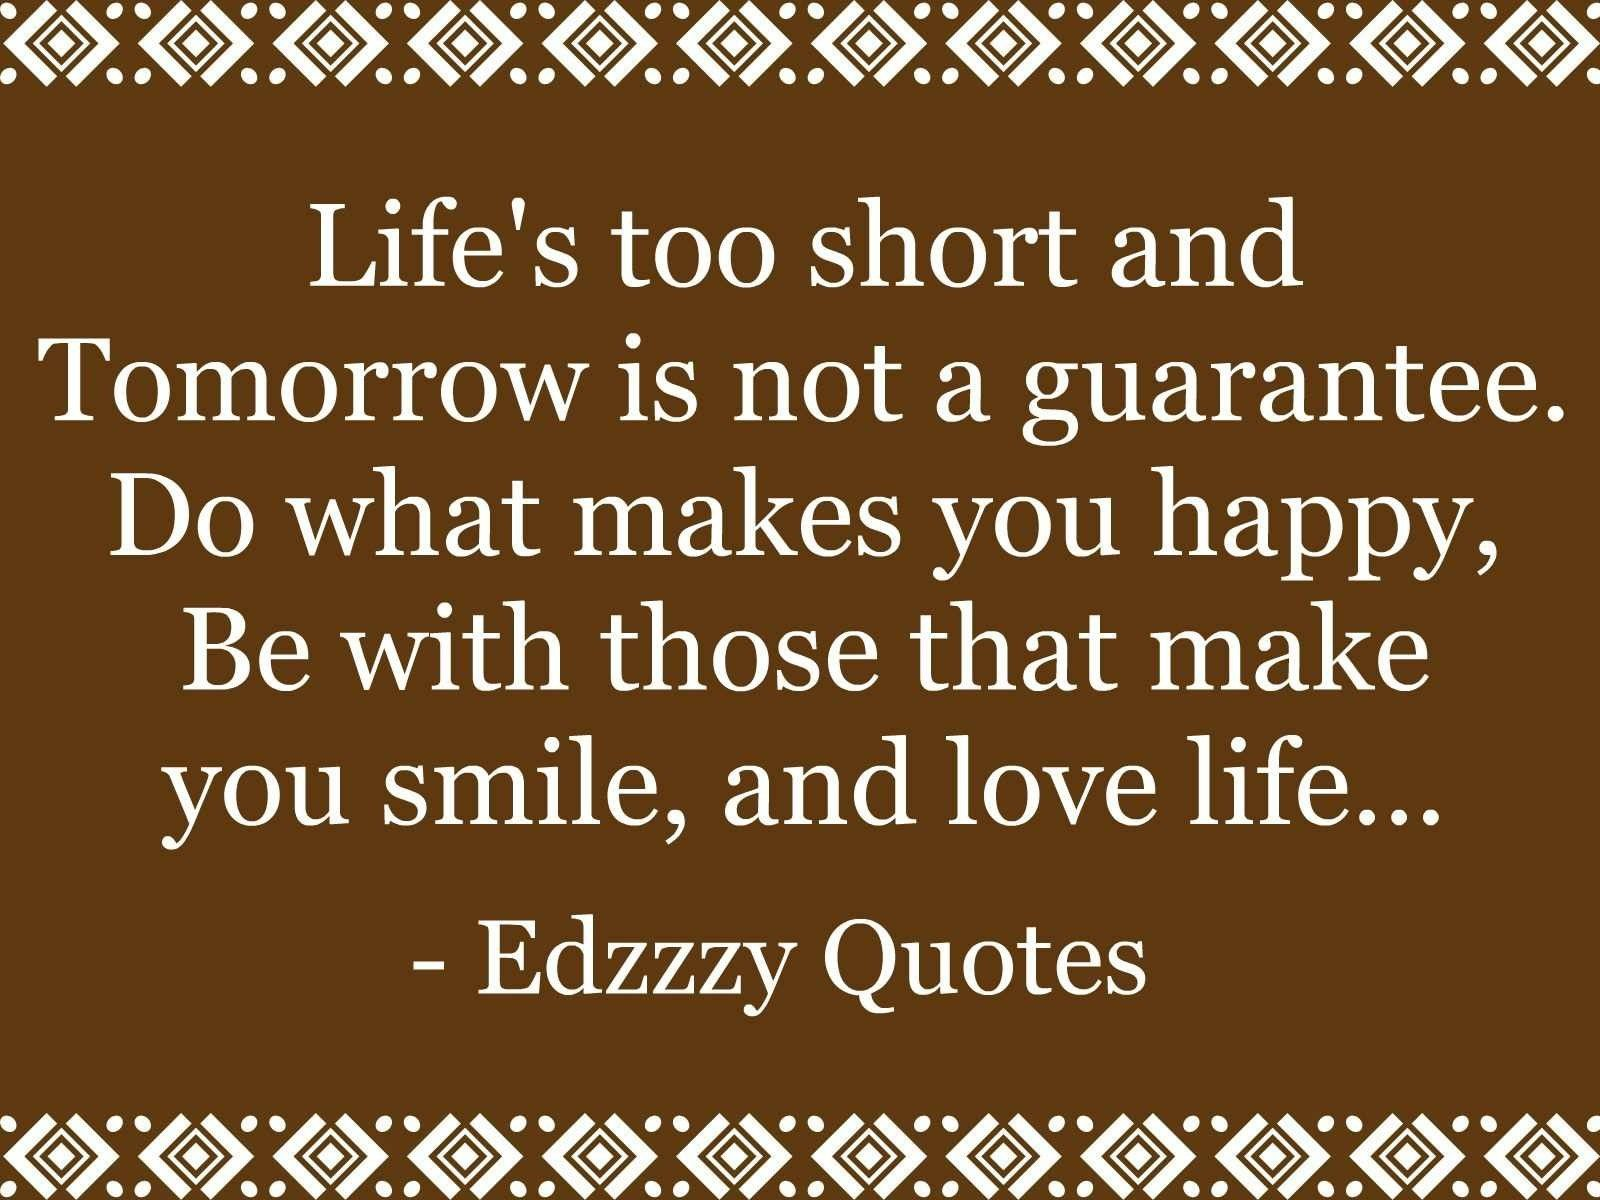 Pin By Richard Clayton On My Likes Short Inspirational Life Quotes Short Inspirational Quotes Life Is Too Short Quotes